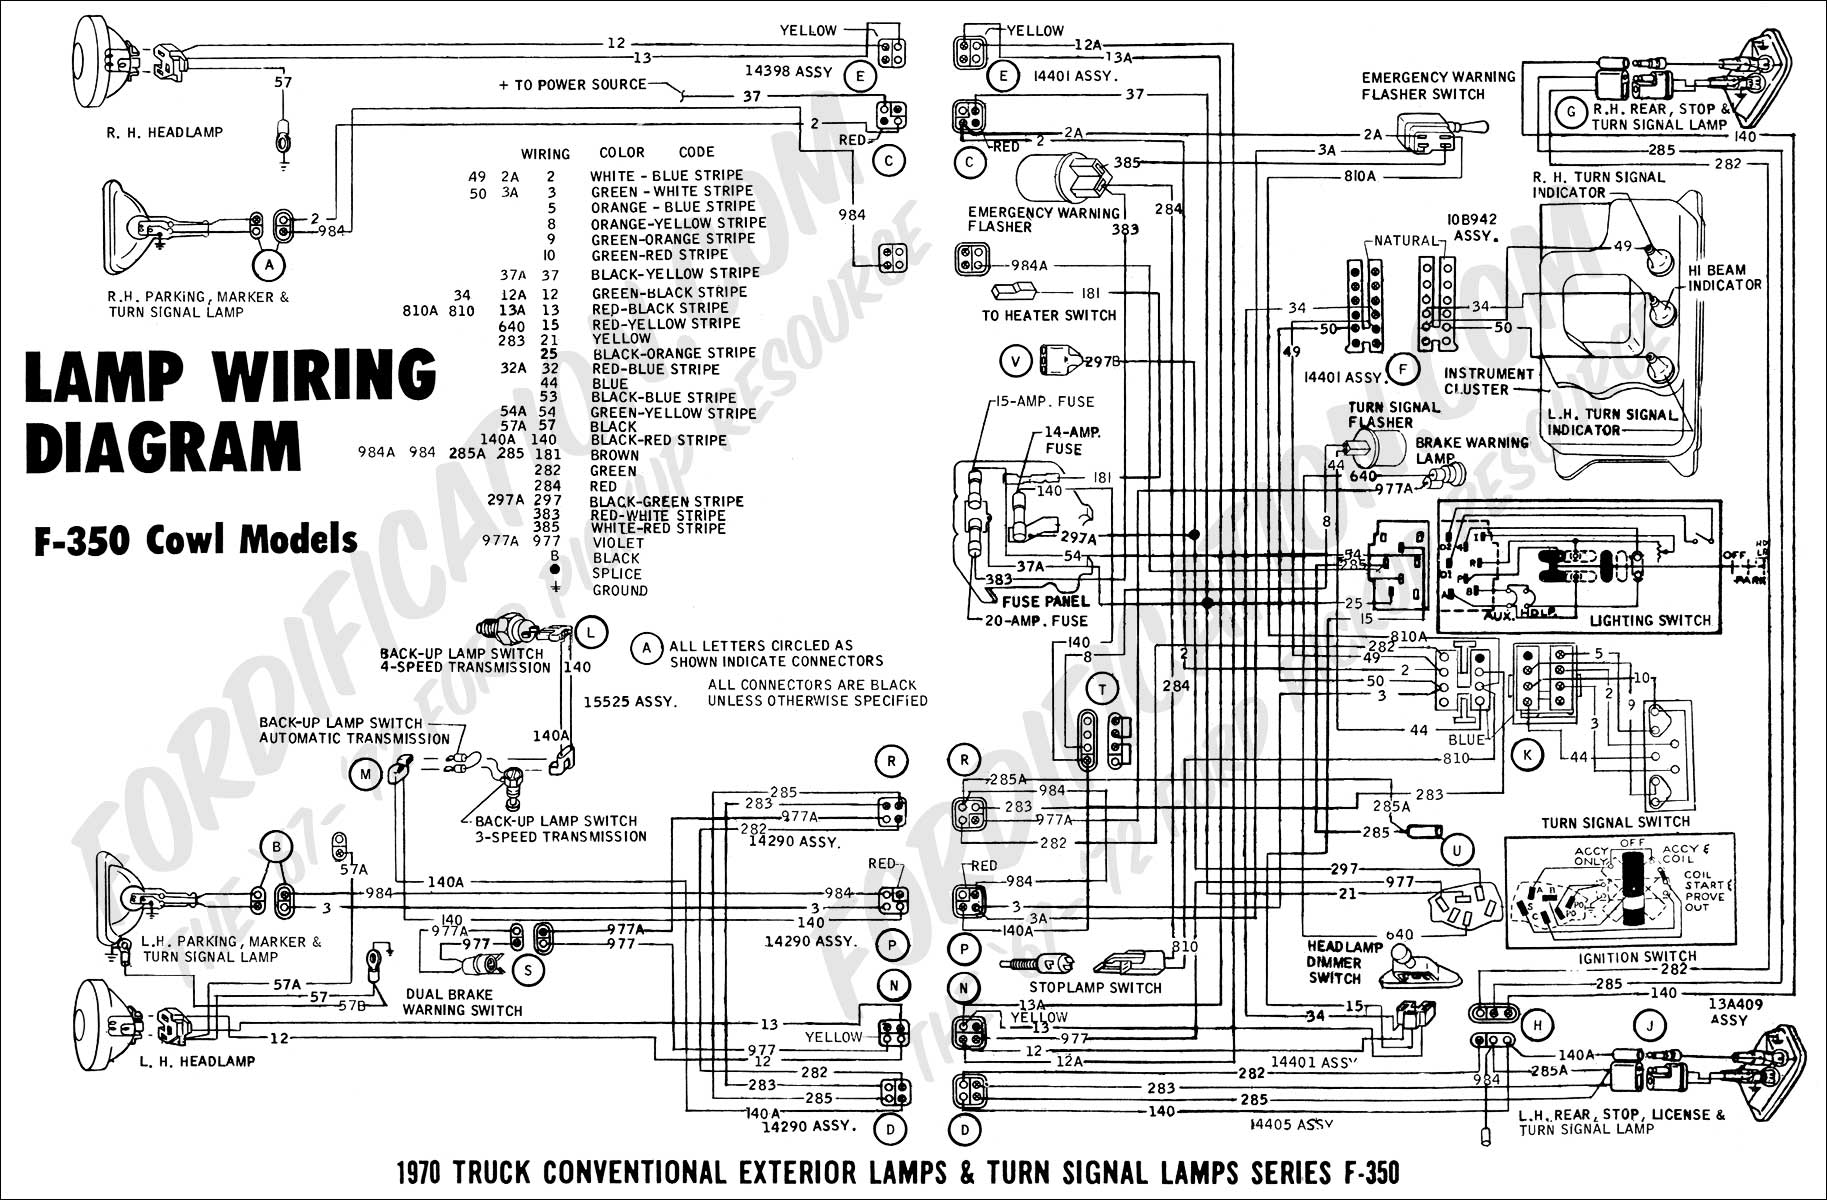 2002 Ford F750 Wiring Diagram Third Level For F150 2001 Isuzu Trooper